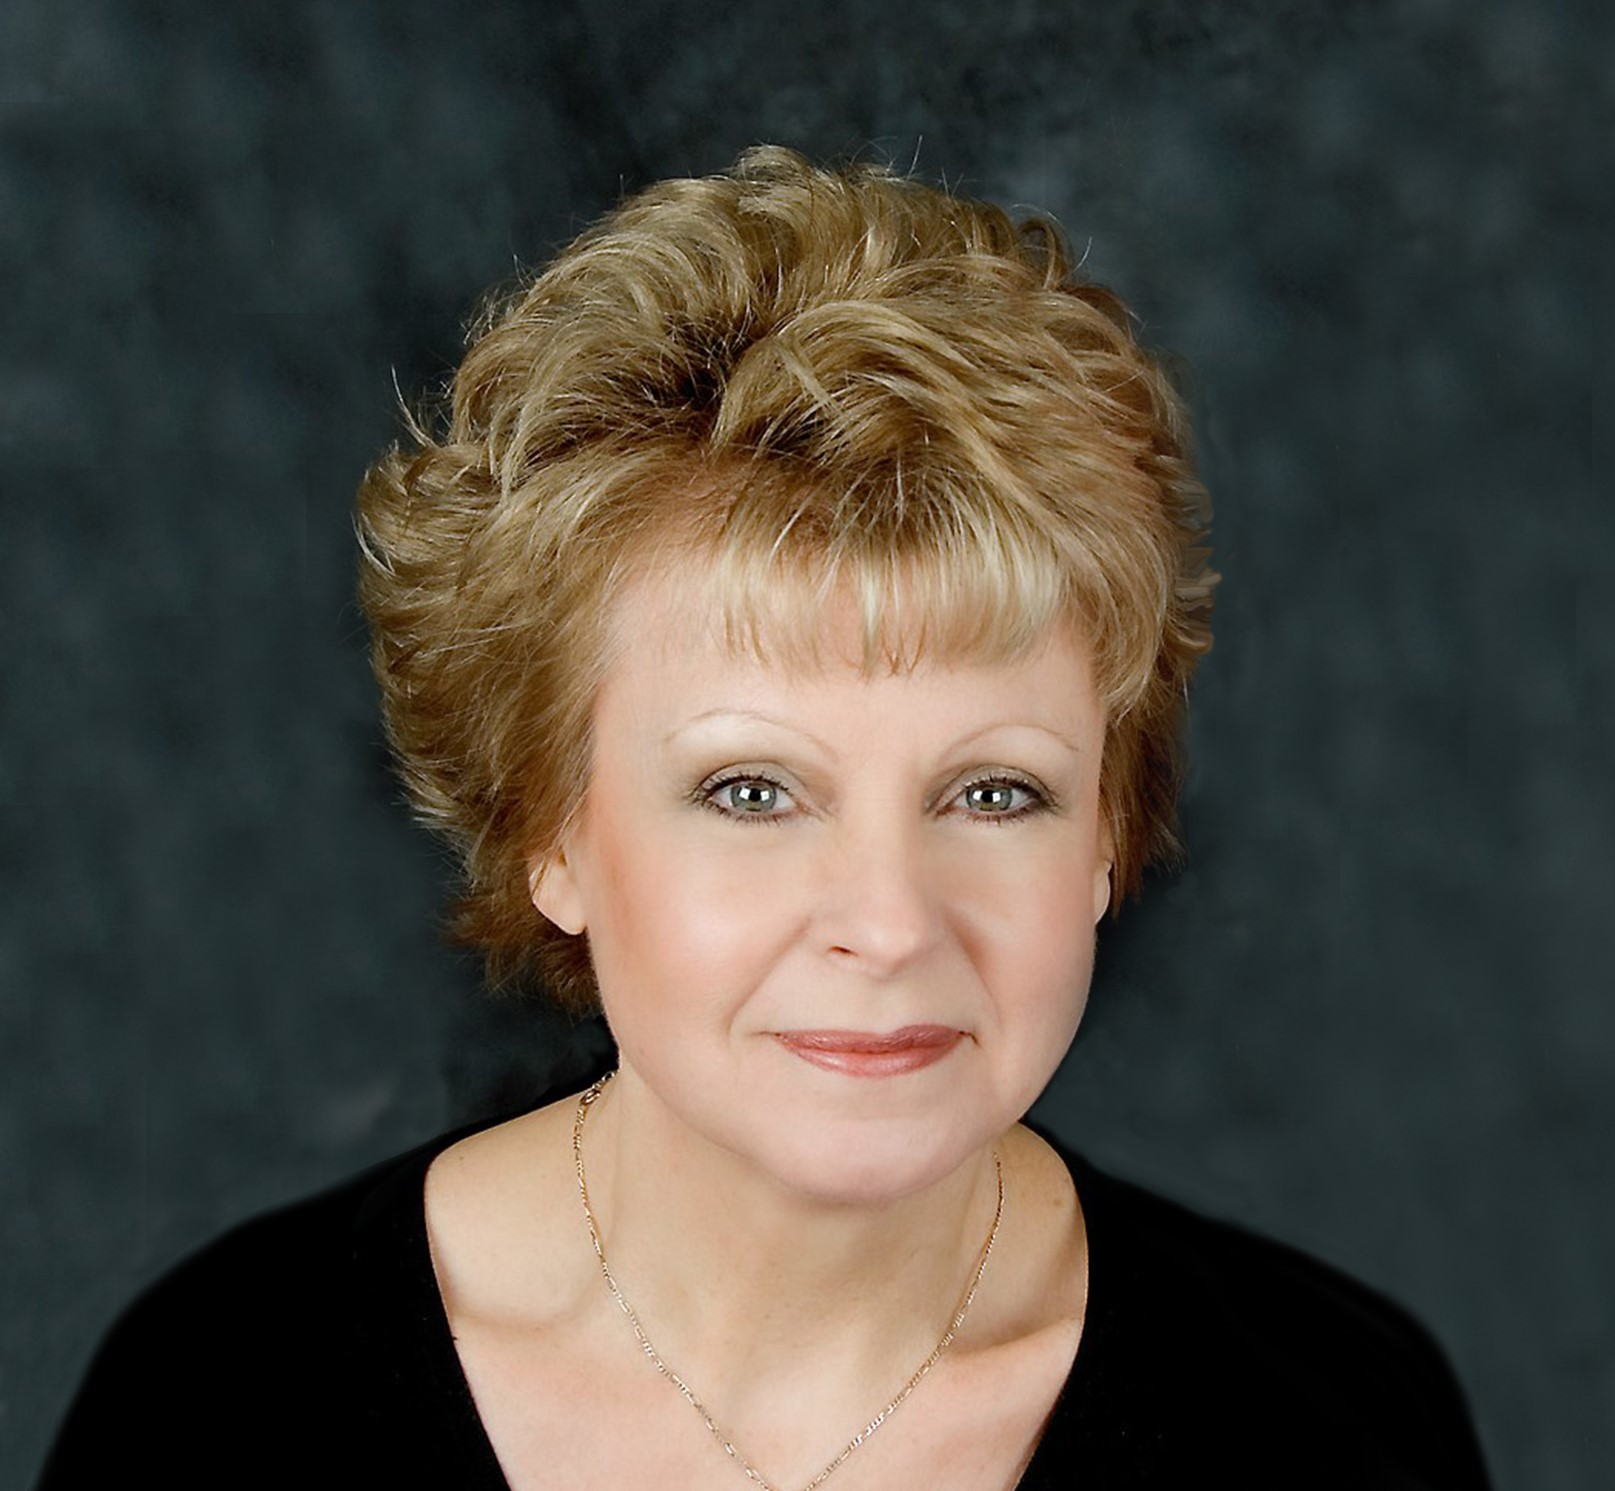 Janet Ford